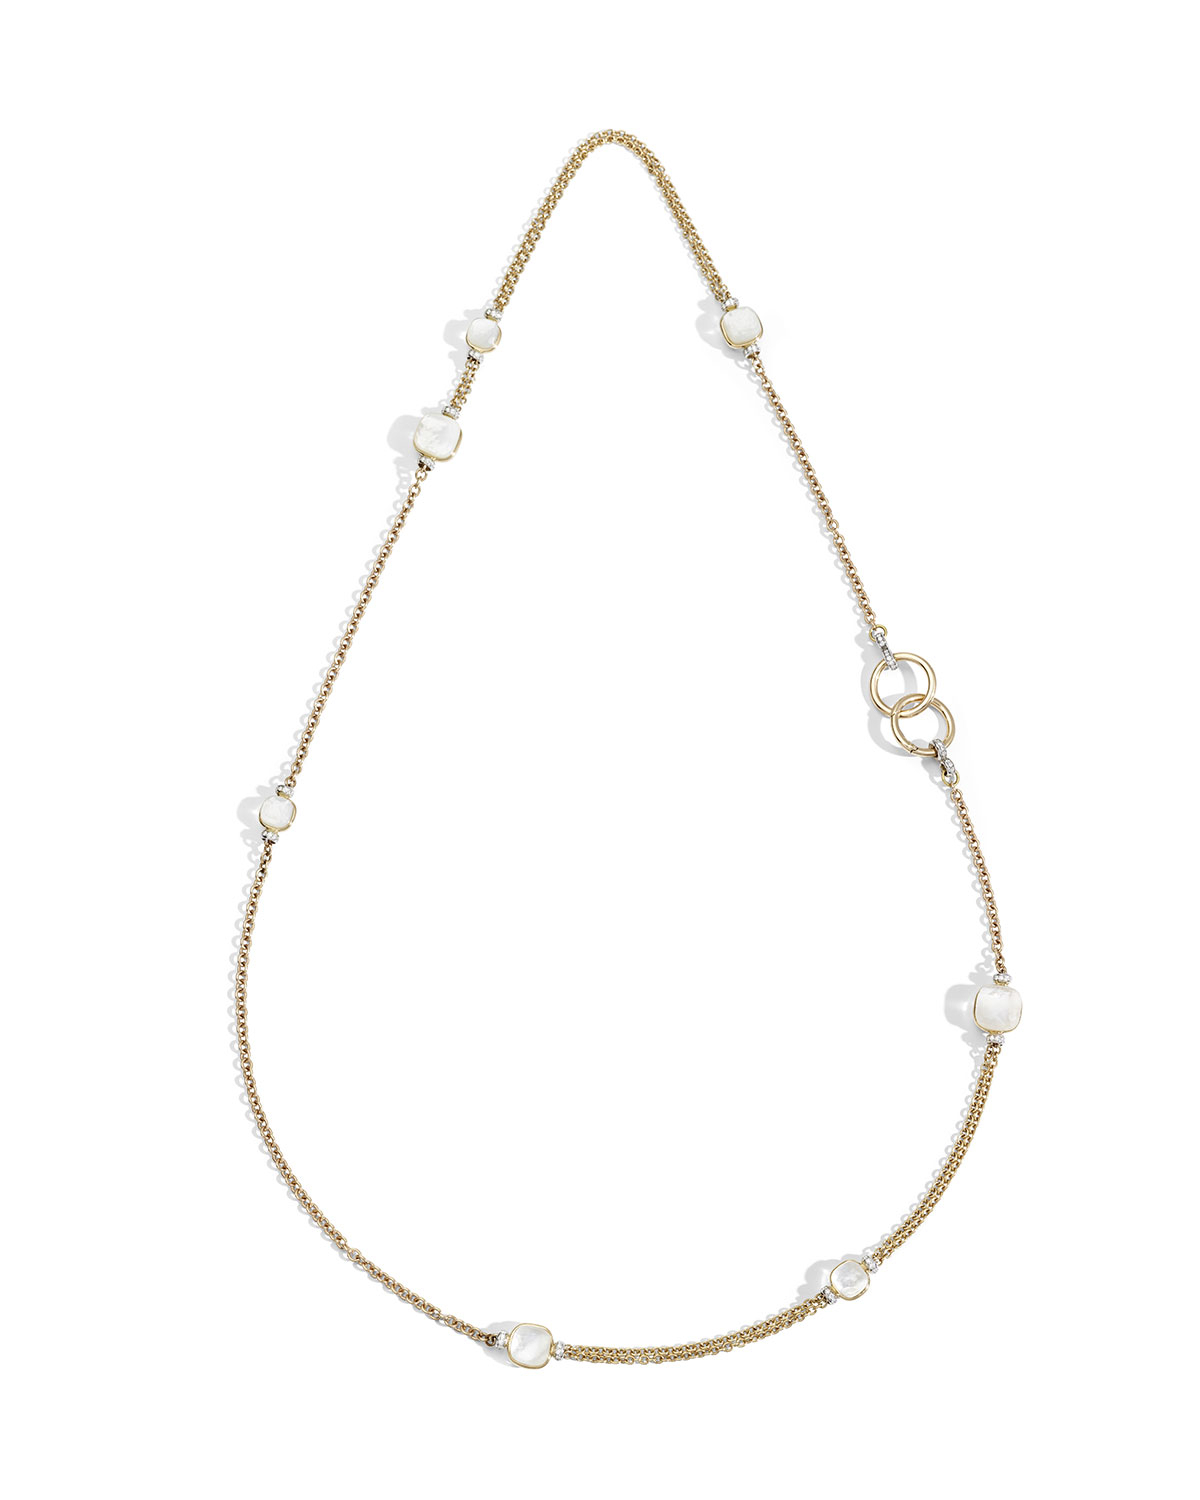 Nudo 18K White Topaz/mother Of Pearl & Diamond Sautoir Necklace Throughout Current Diamond Sautoir Necklaces In Yellow Gold (View 20 of 25)